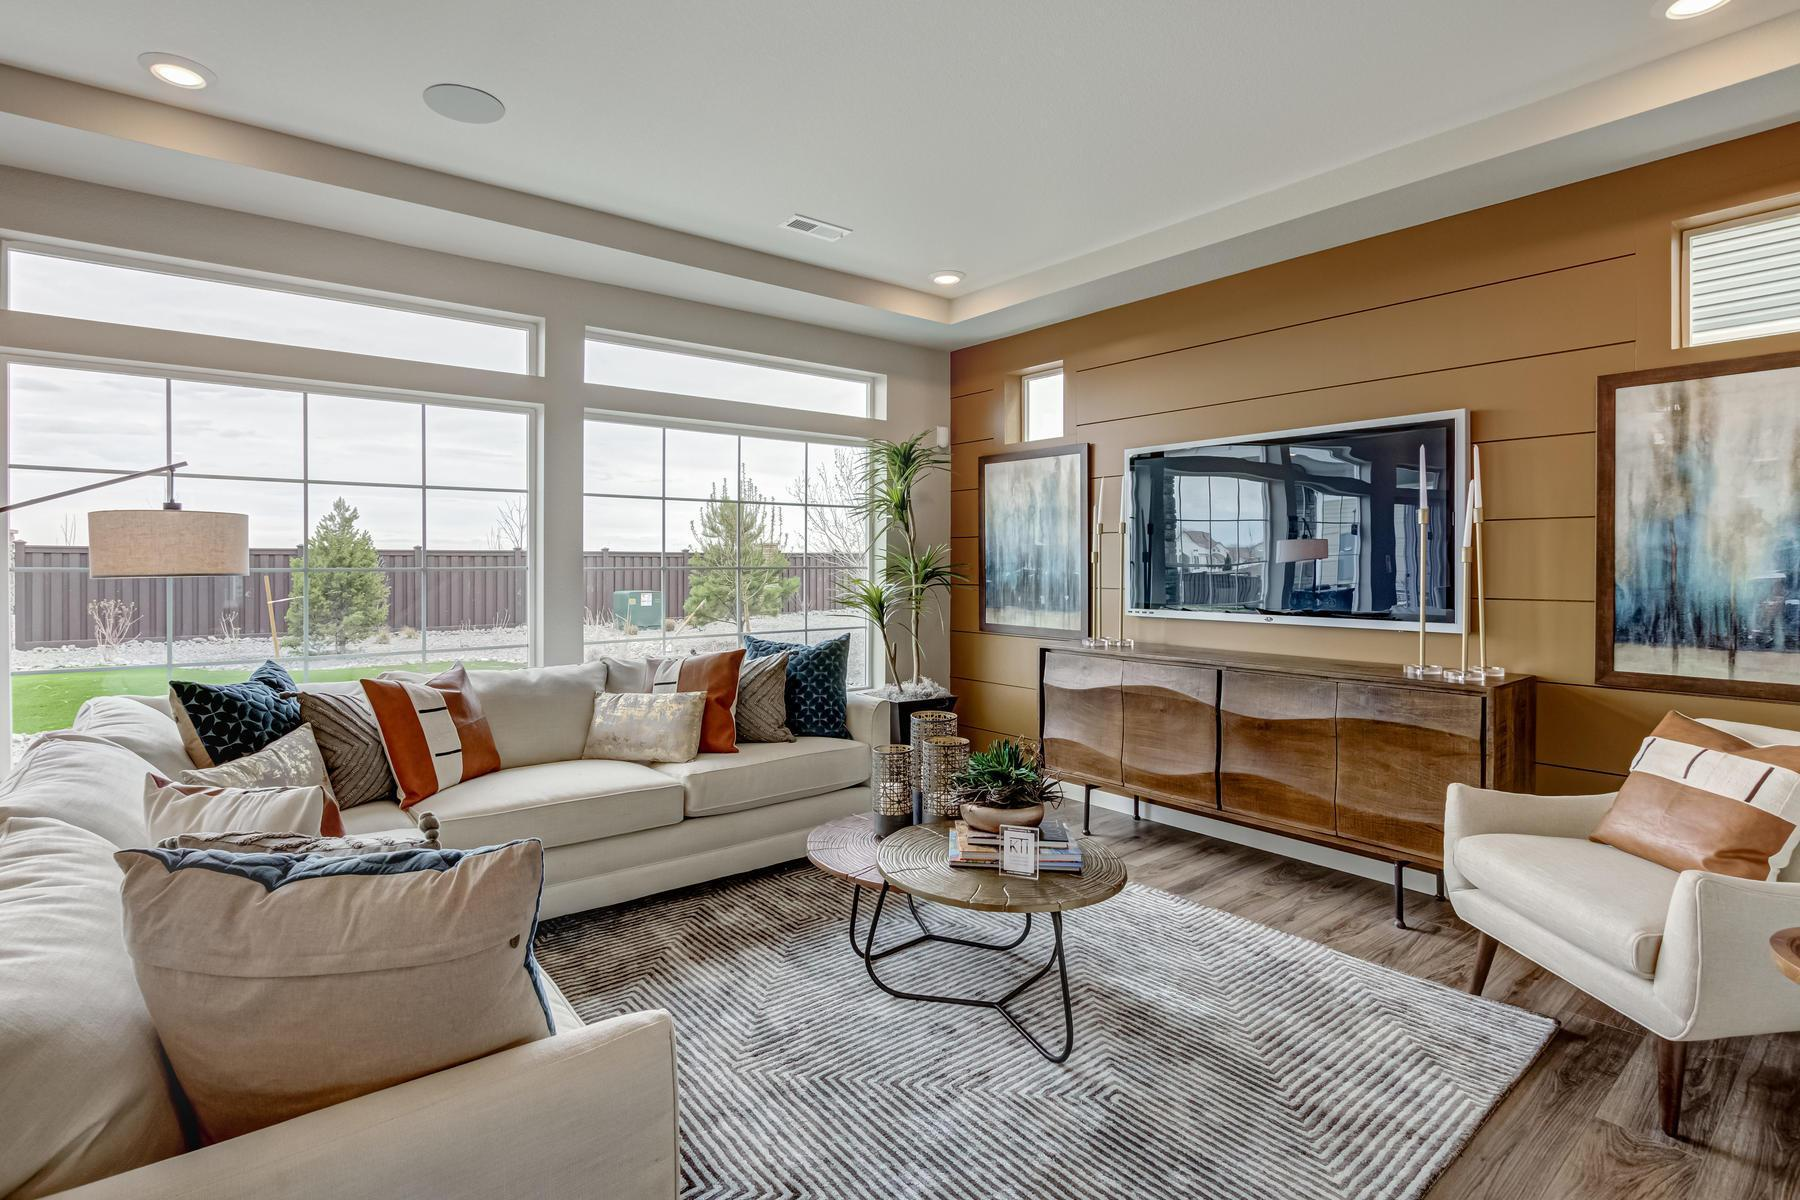 Living Area featured in the BENNET By Oakwood Homes in Denver, CO